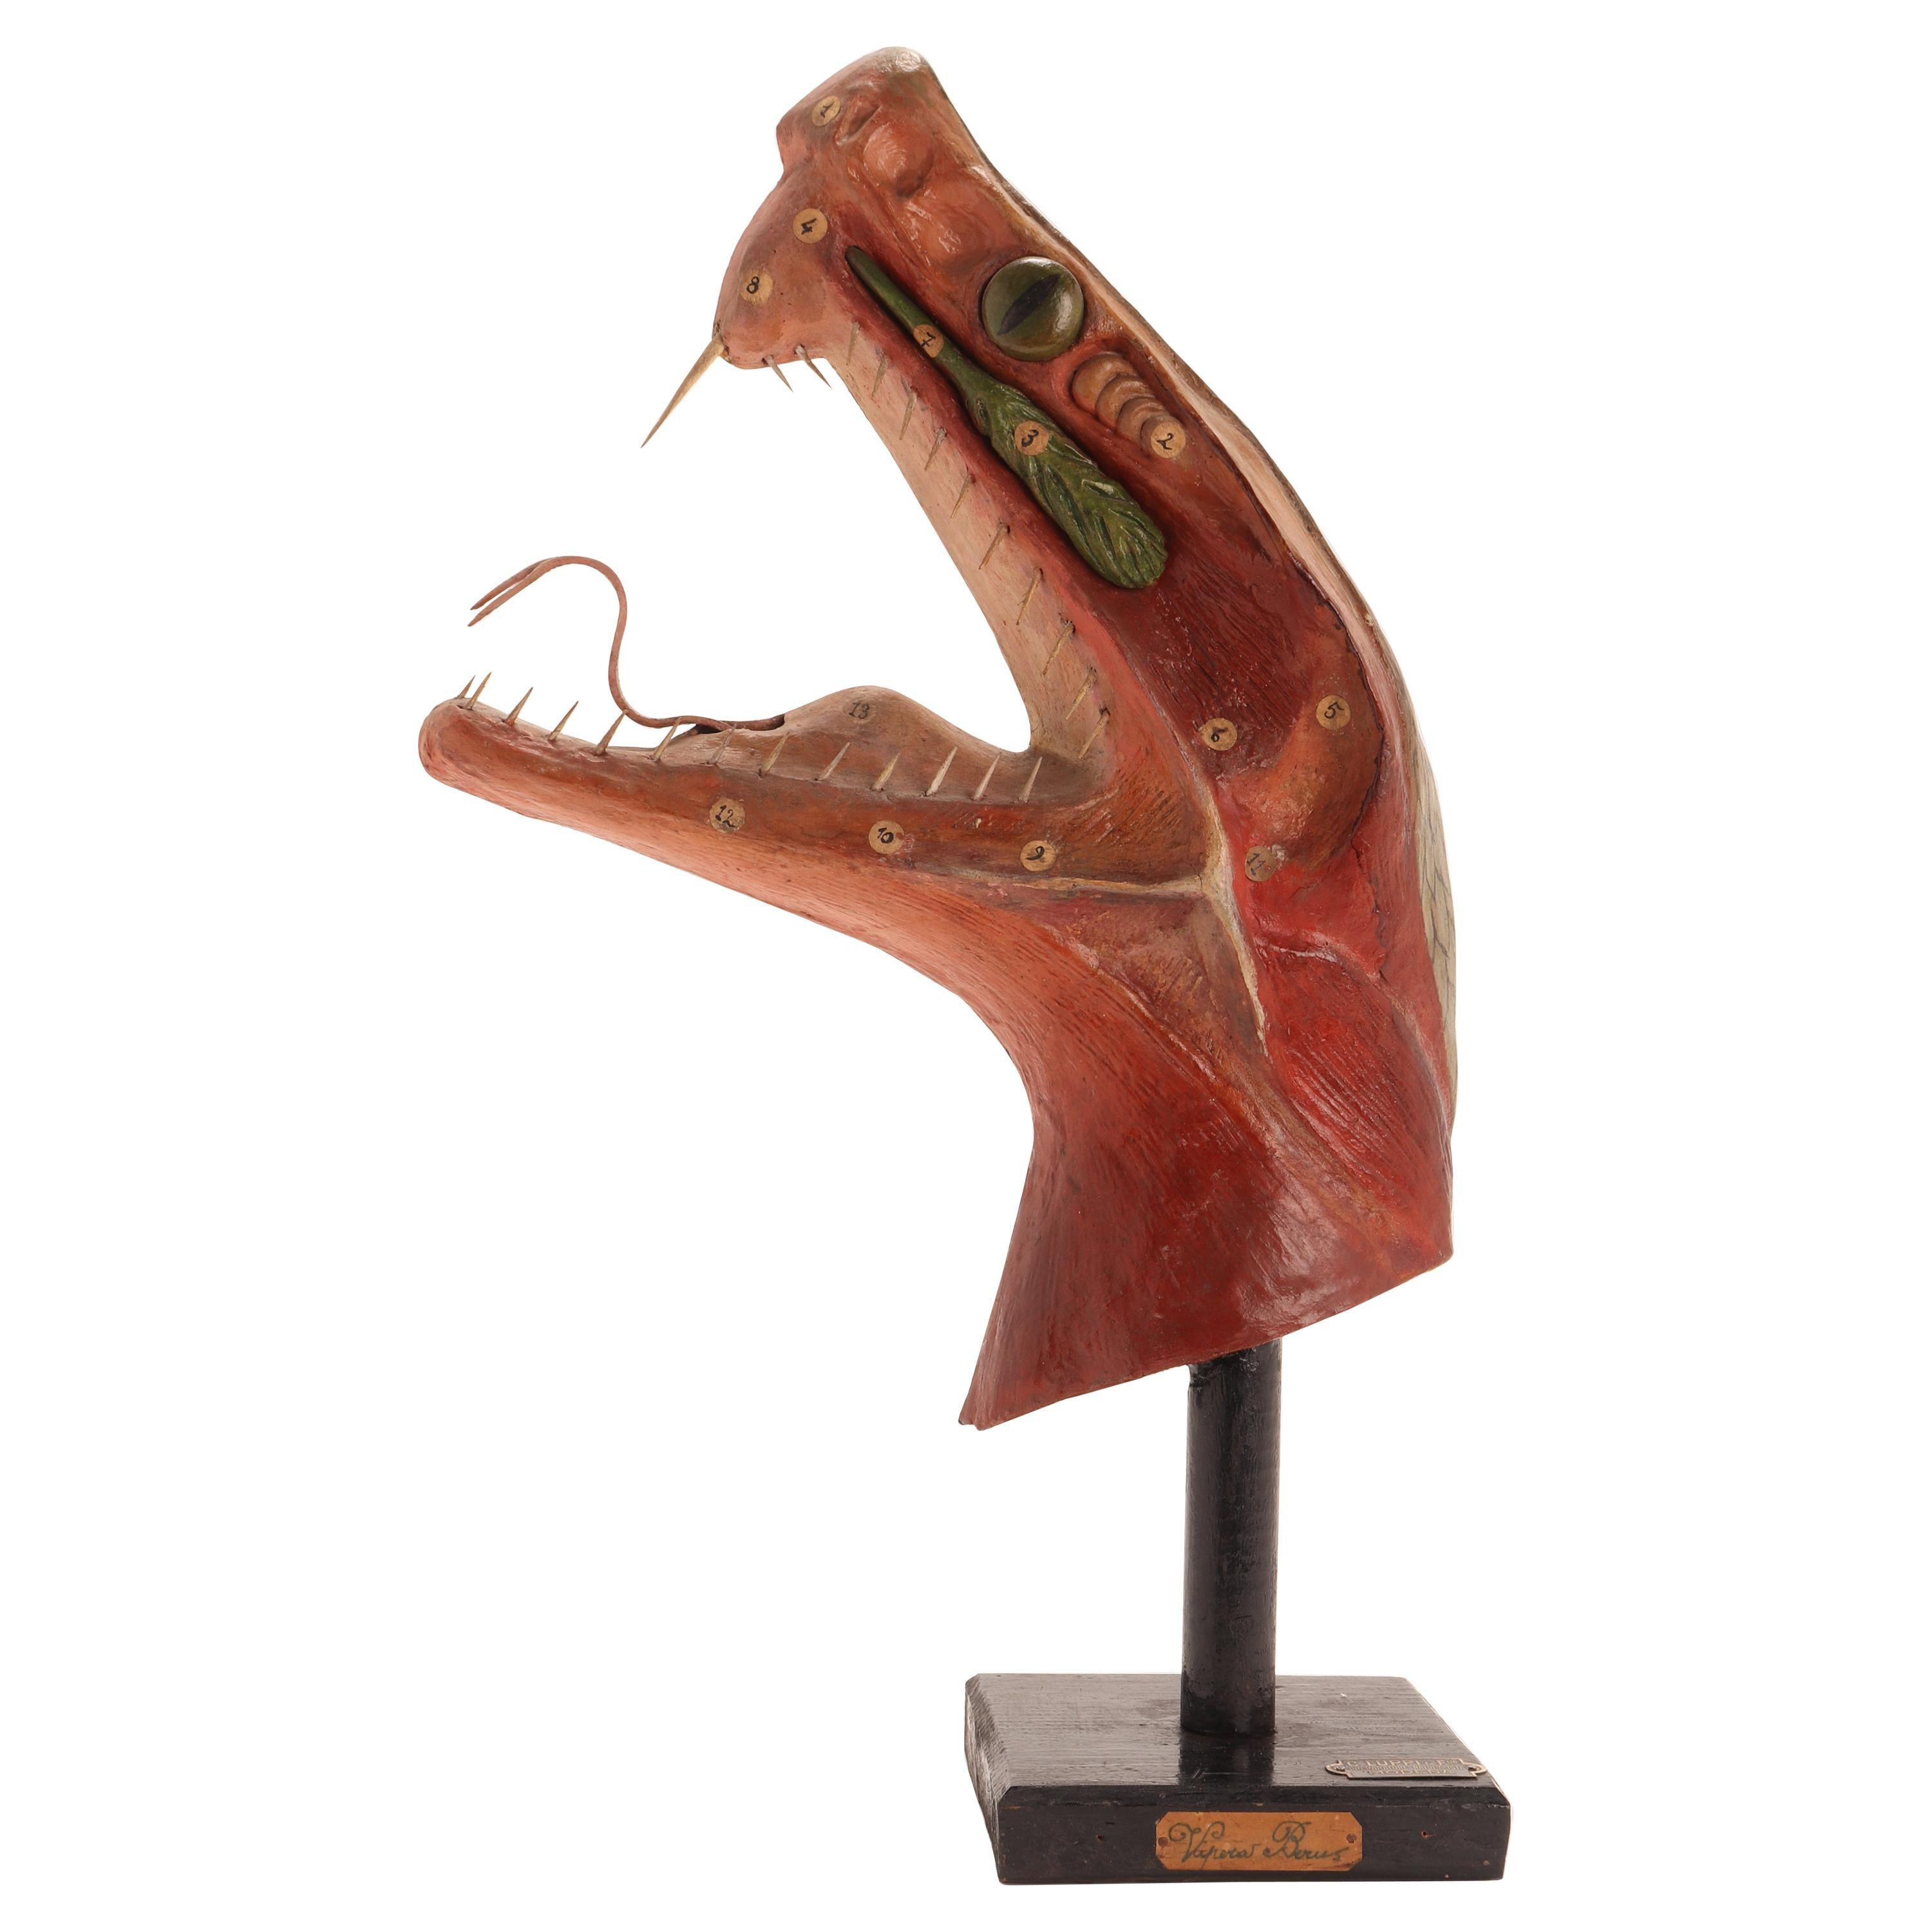 Anatomical Model of the Berus Viper, Italy 1900